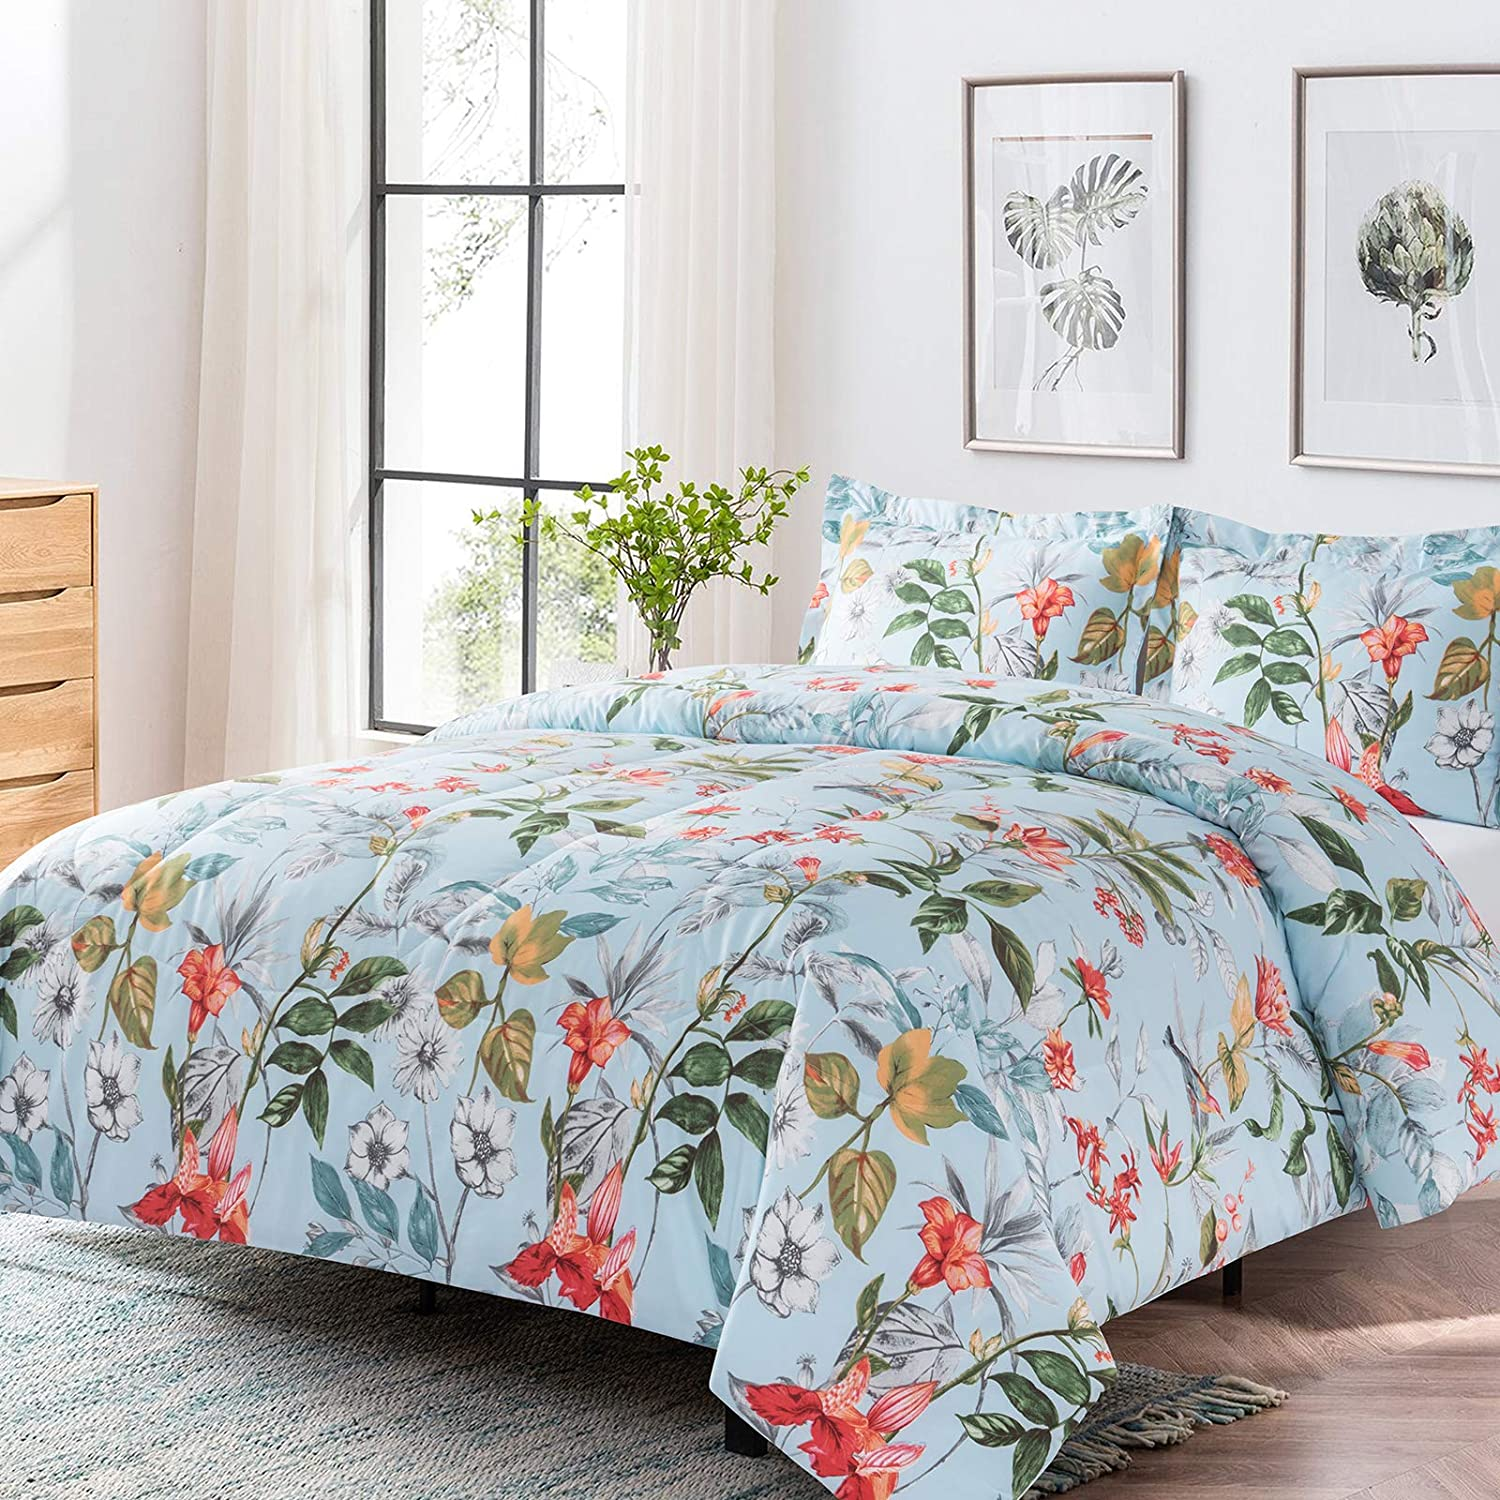 Shatex Queen Sized Comforter Sets 3 Pieces Bed Comforter for Queen Bed– Ultra Soft 100% Microfiber Polyester Comforters for Queen Bed Sets– Flower Pattern Comforter with 2 Pillow Shams